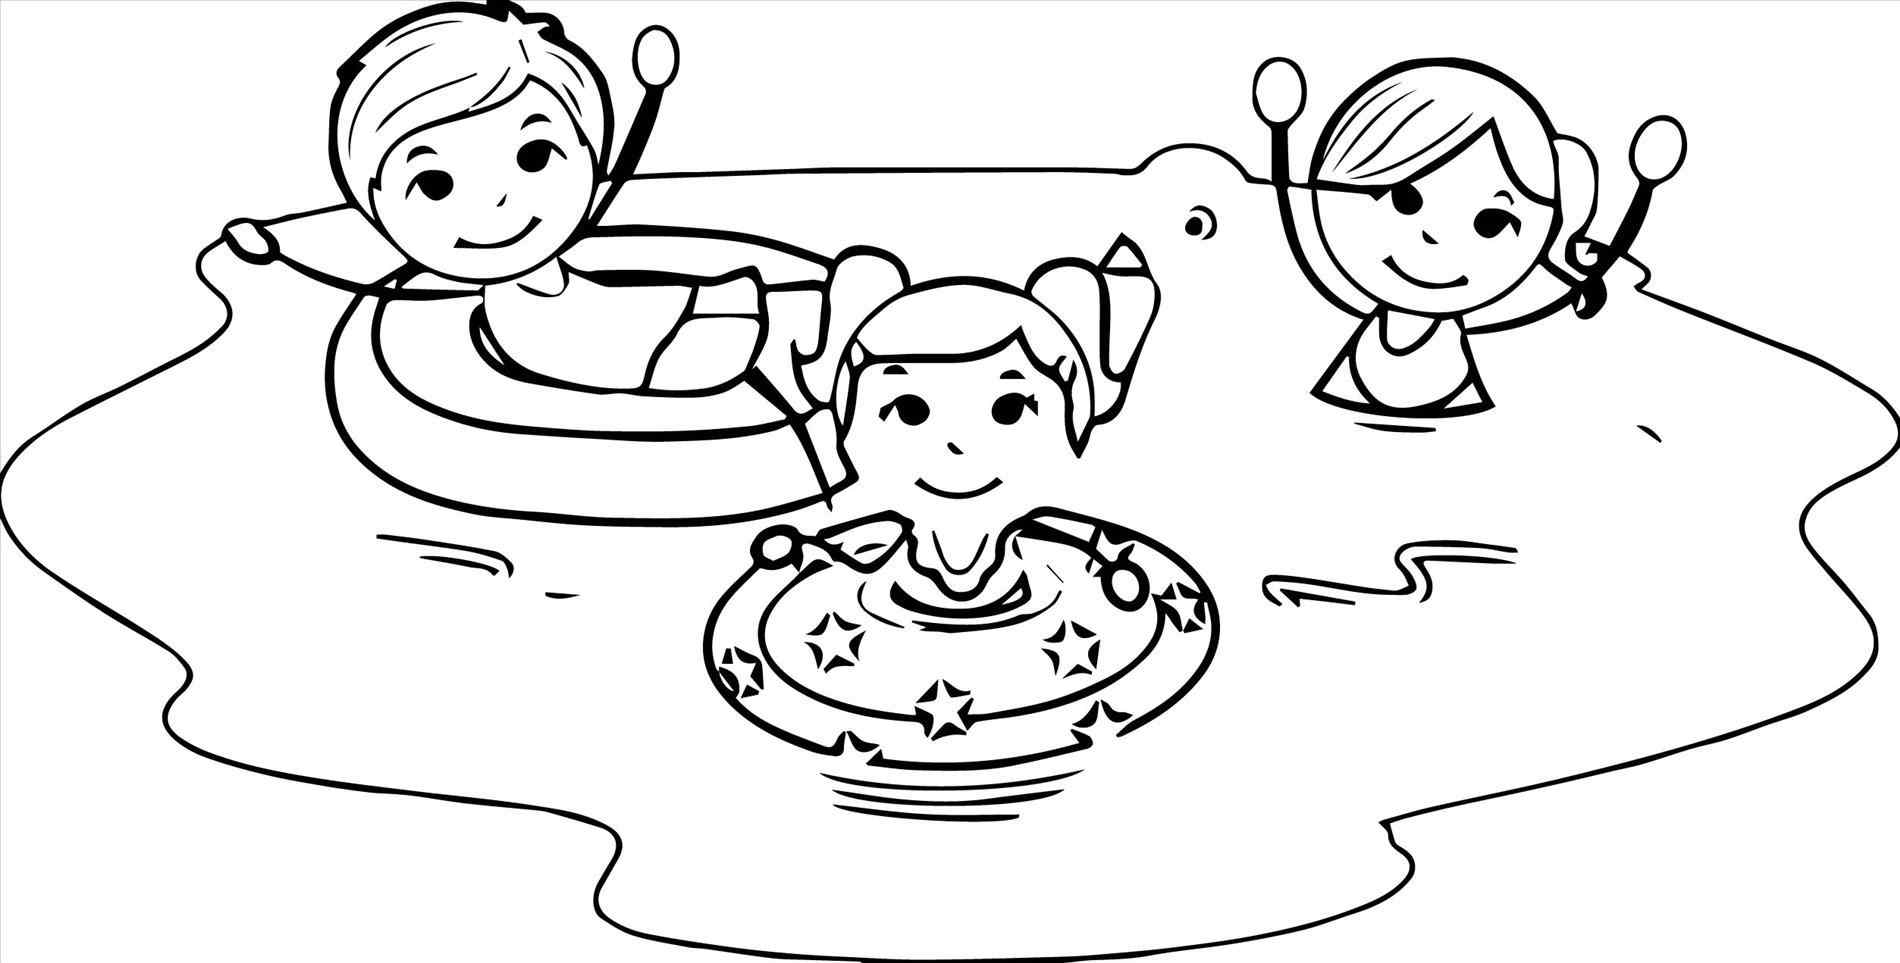 Vacation clipart black and white 3 » Clipart Station.